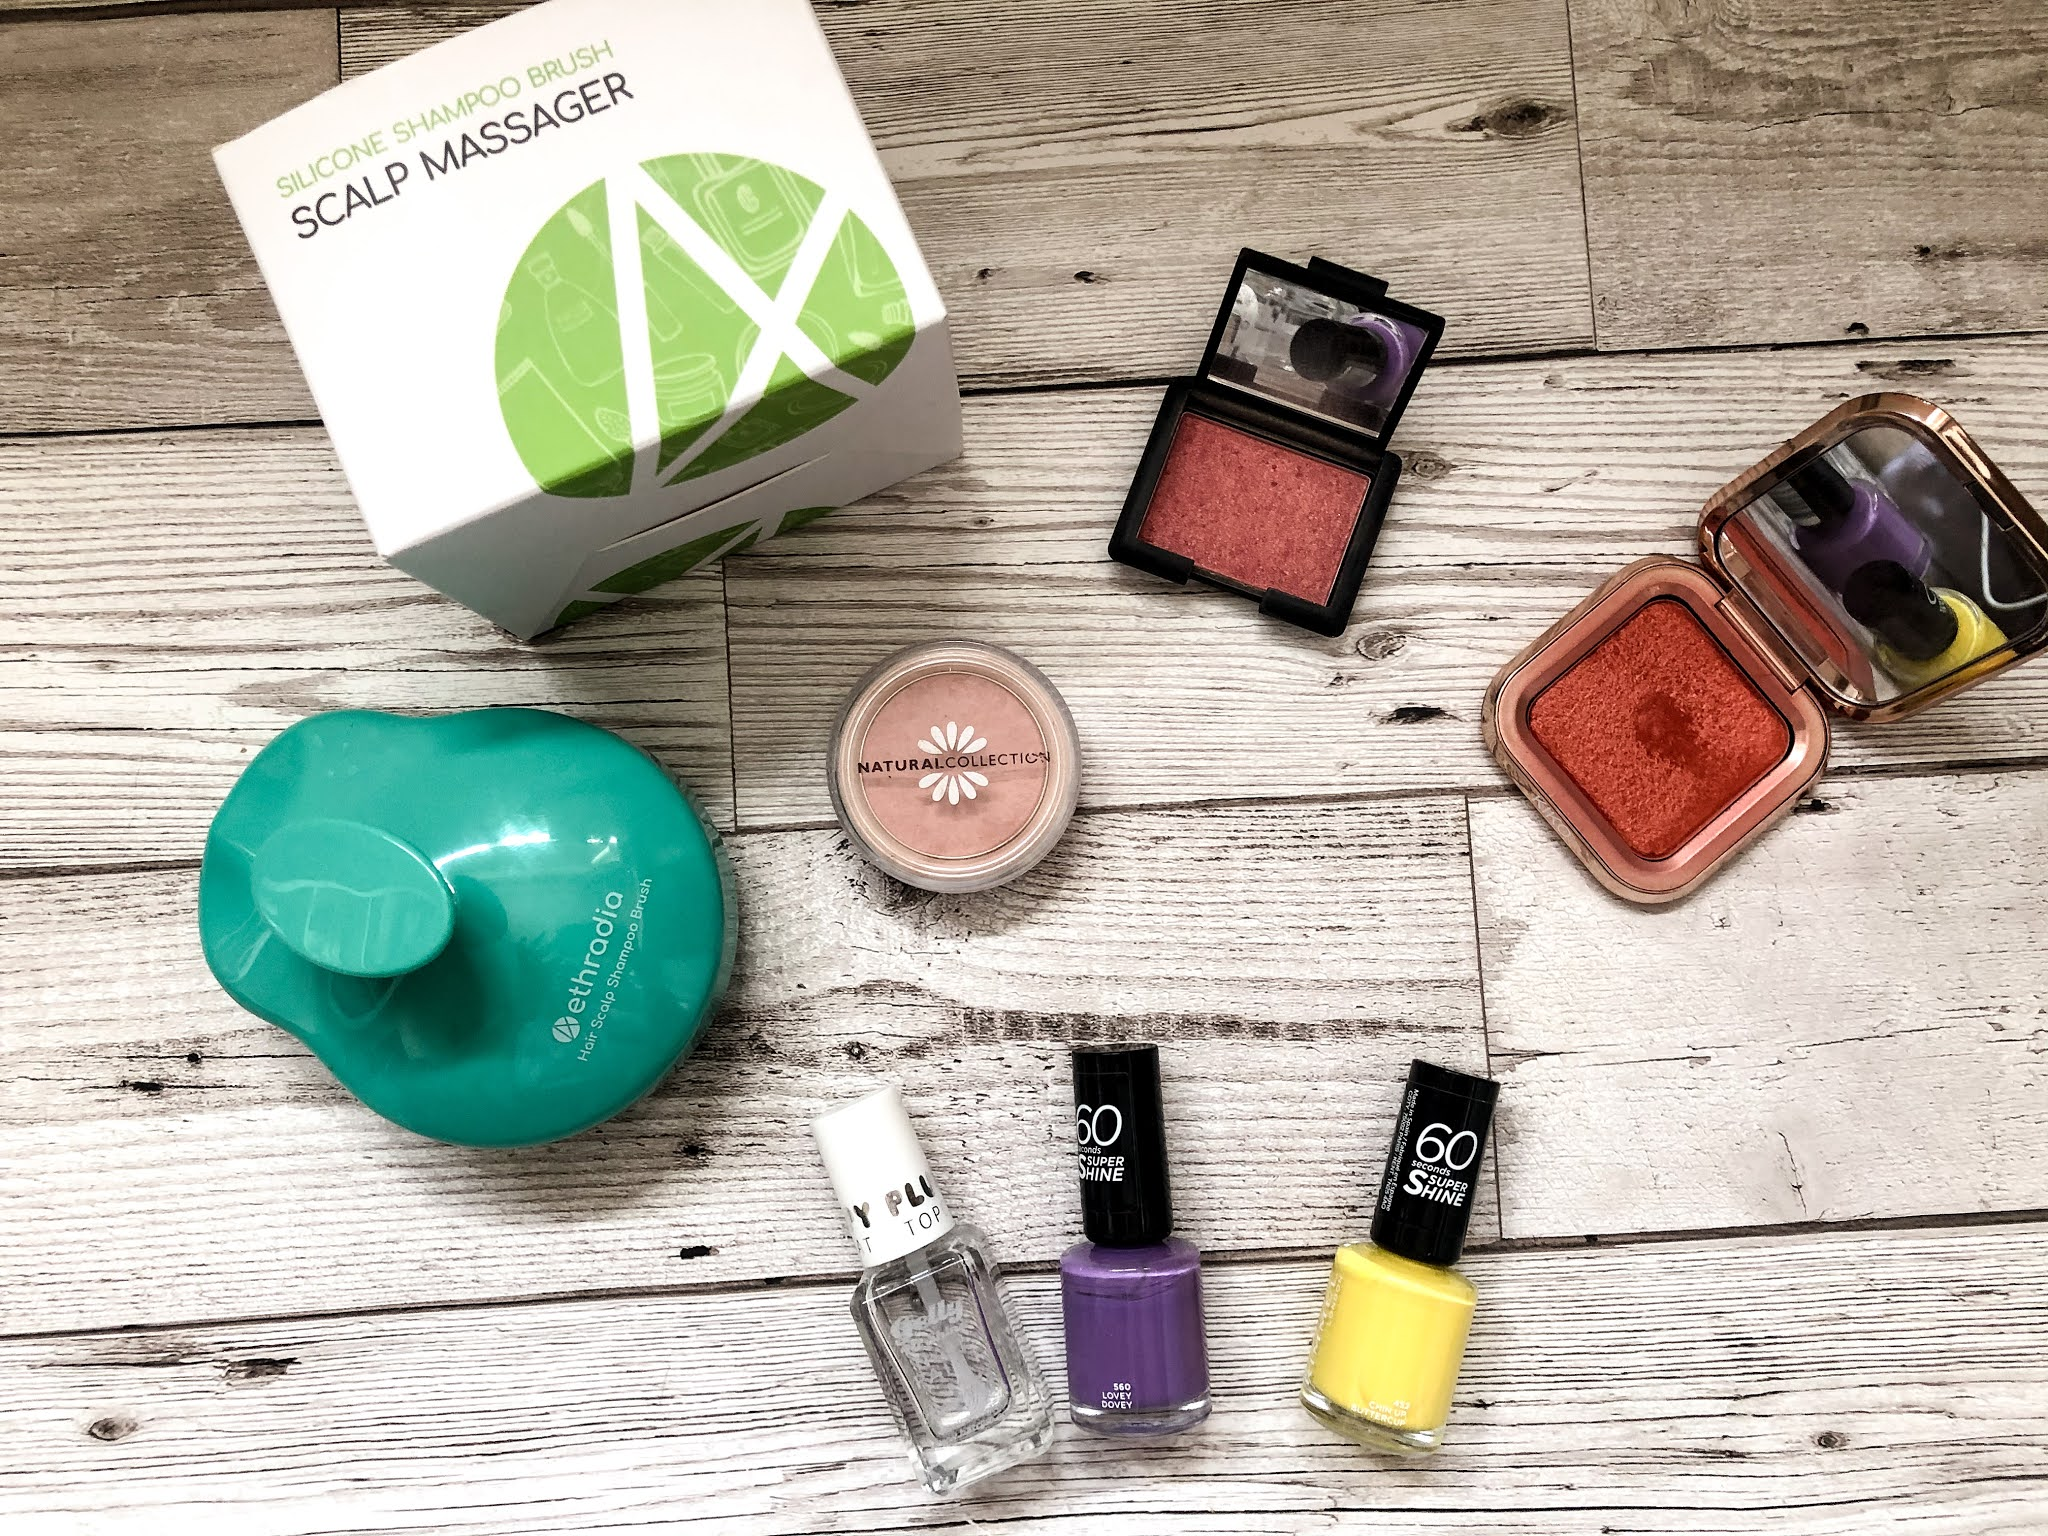 April favourites in 2021. Includes a silicone scalp massager, nail polishes and iridescent blushers.